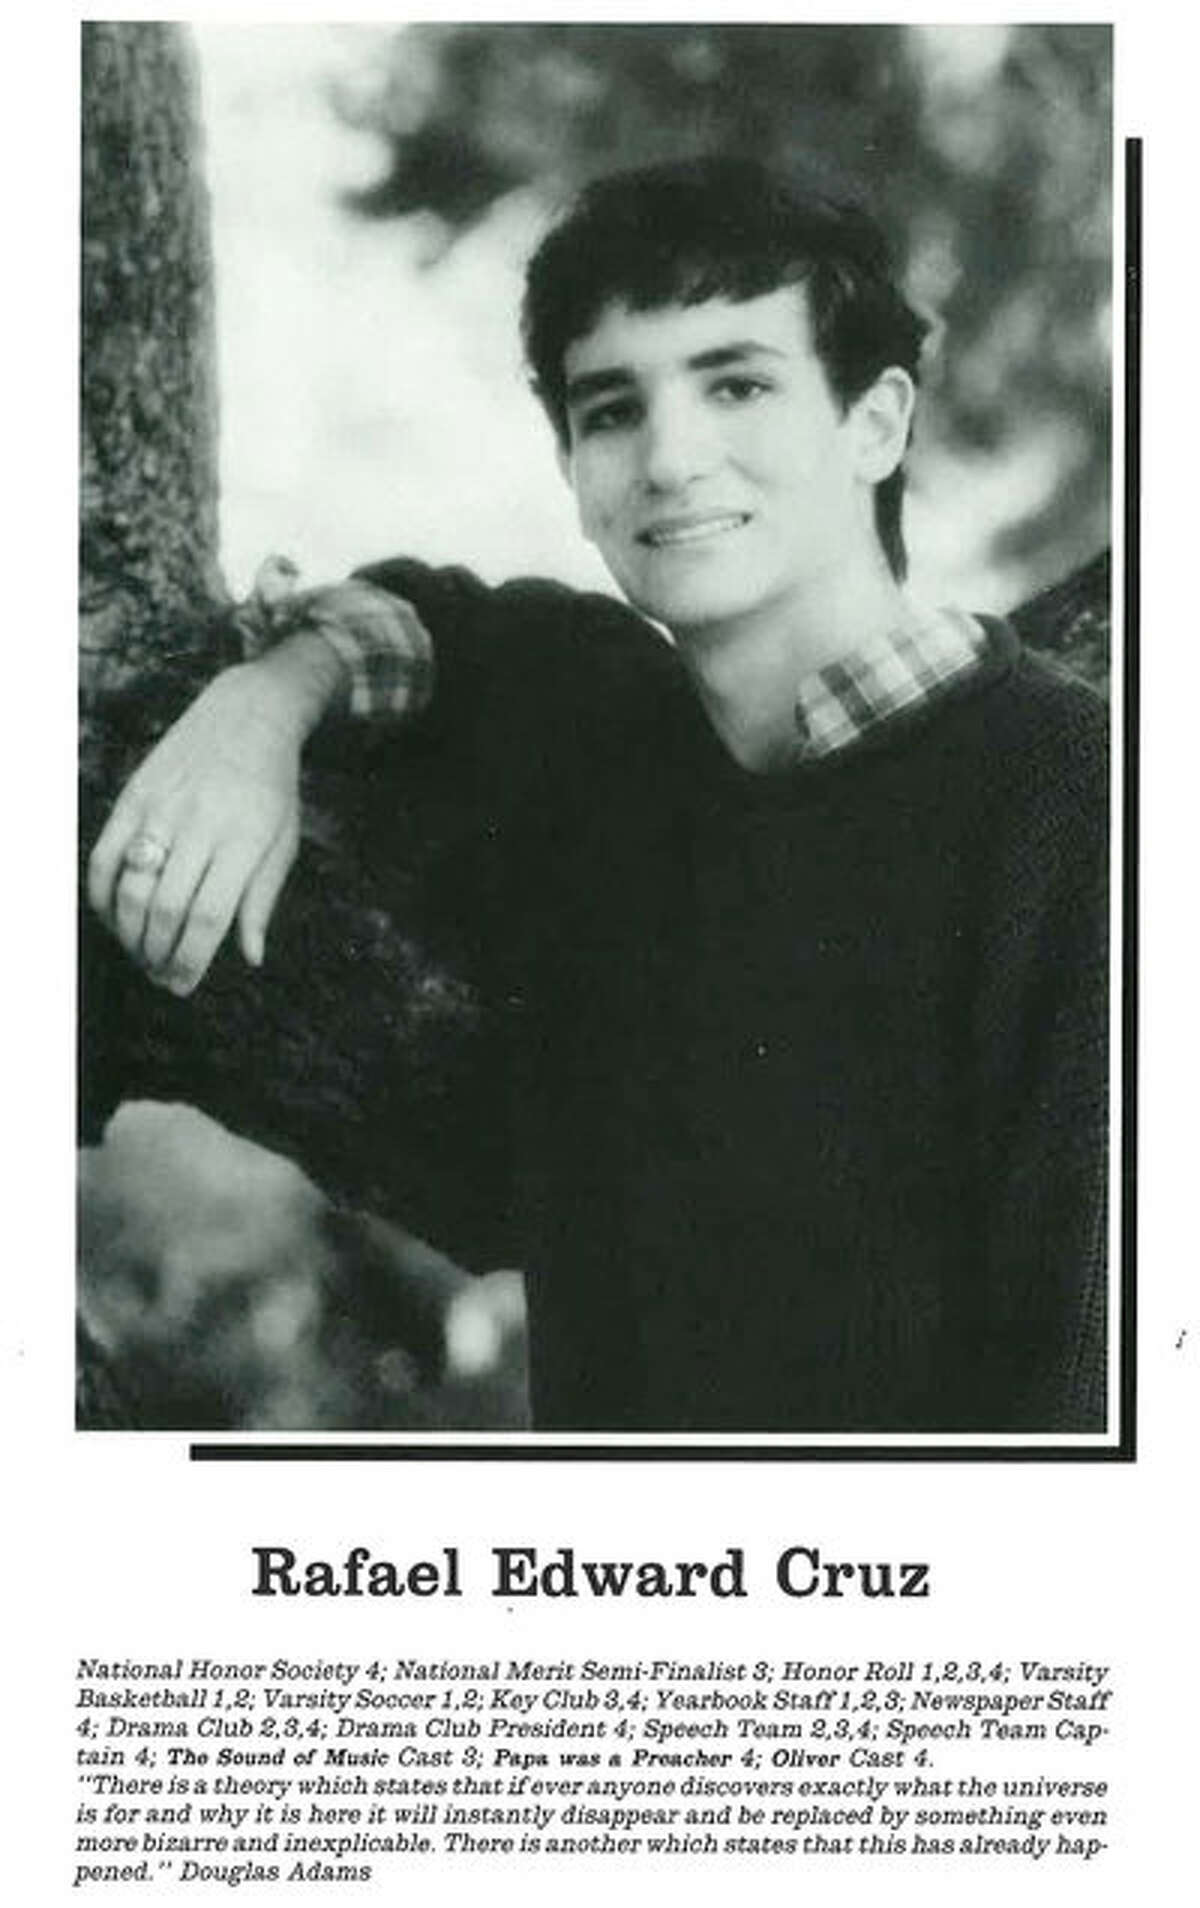 Ted Cruz A young Ted Cruz in hisSecond Baptist High School yearbook photo. Sometime between 1984-1988.